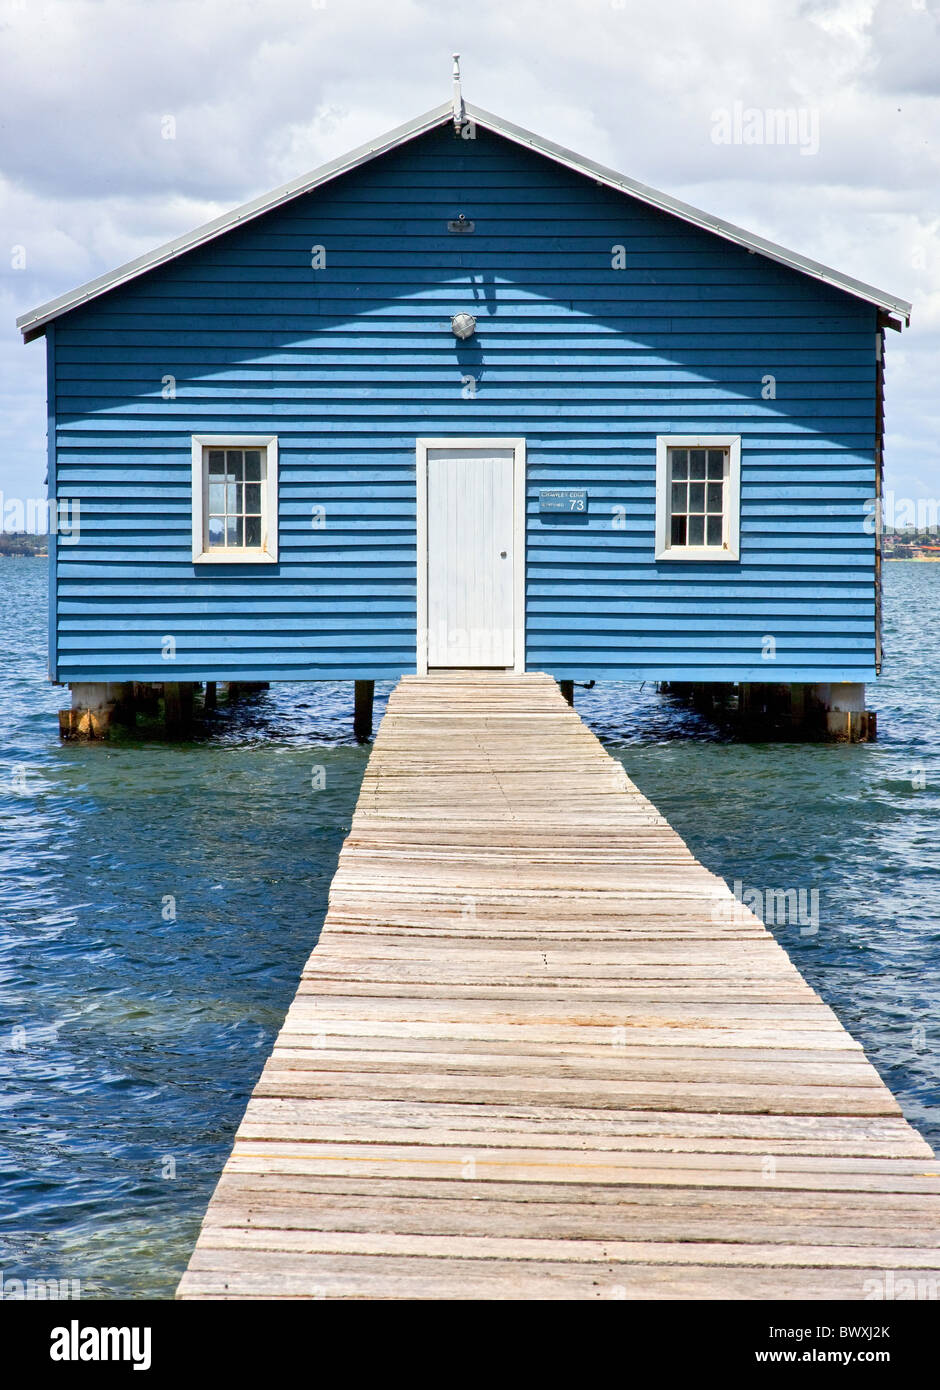 Crawley Edge Matilda Bay Boatshed on the Swan river estuary in Perth Western Australia - Stock Image